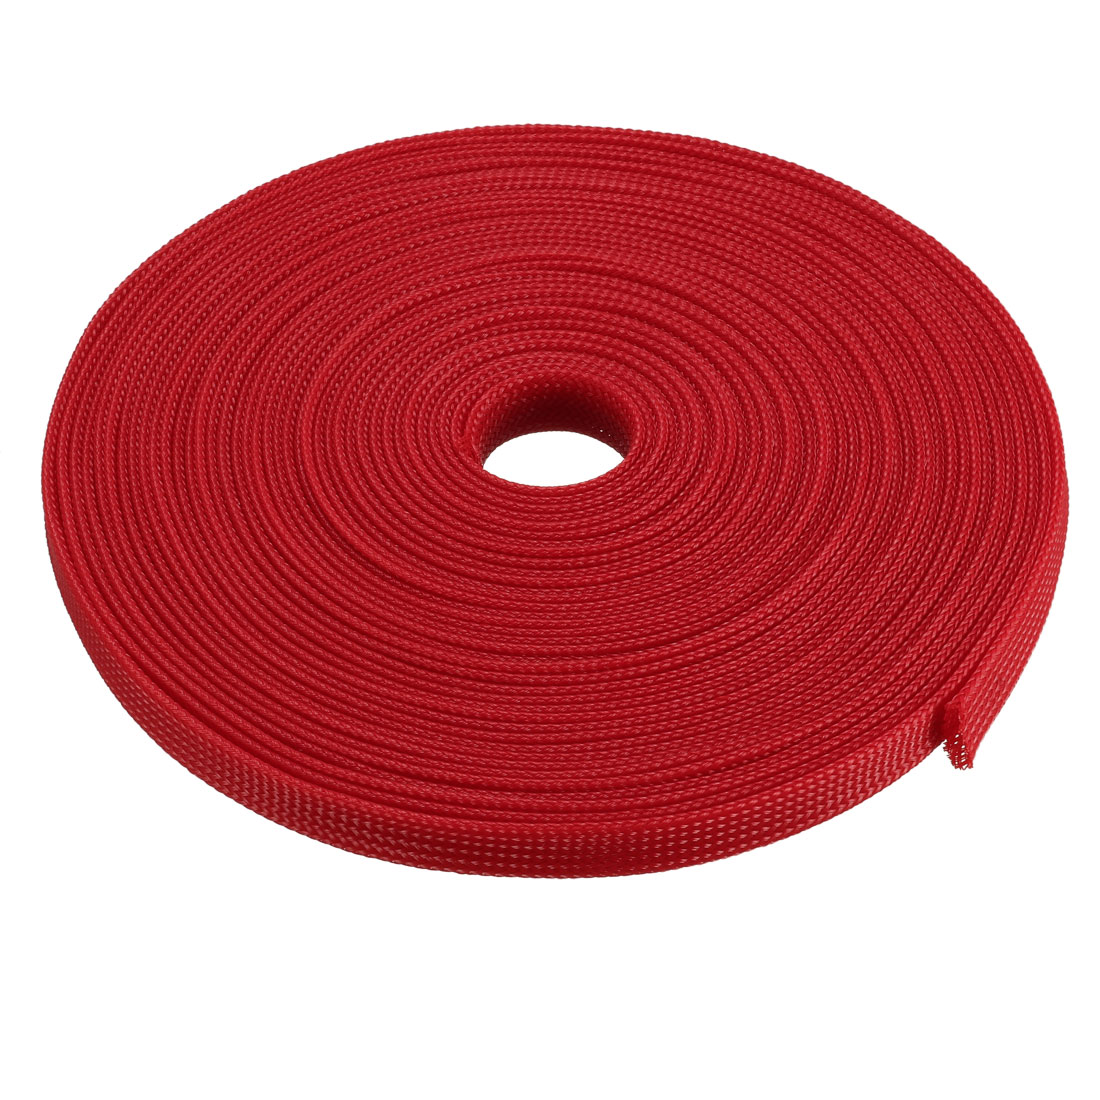 PET Braided Sleeving 32.8 Feet 10m Expandable Cable Wrap 10mm Diameter Wire Sheath Red